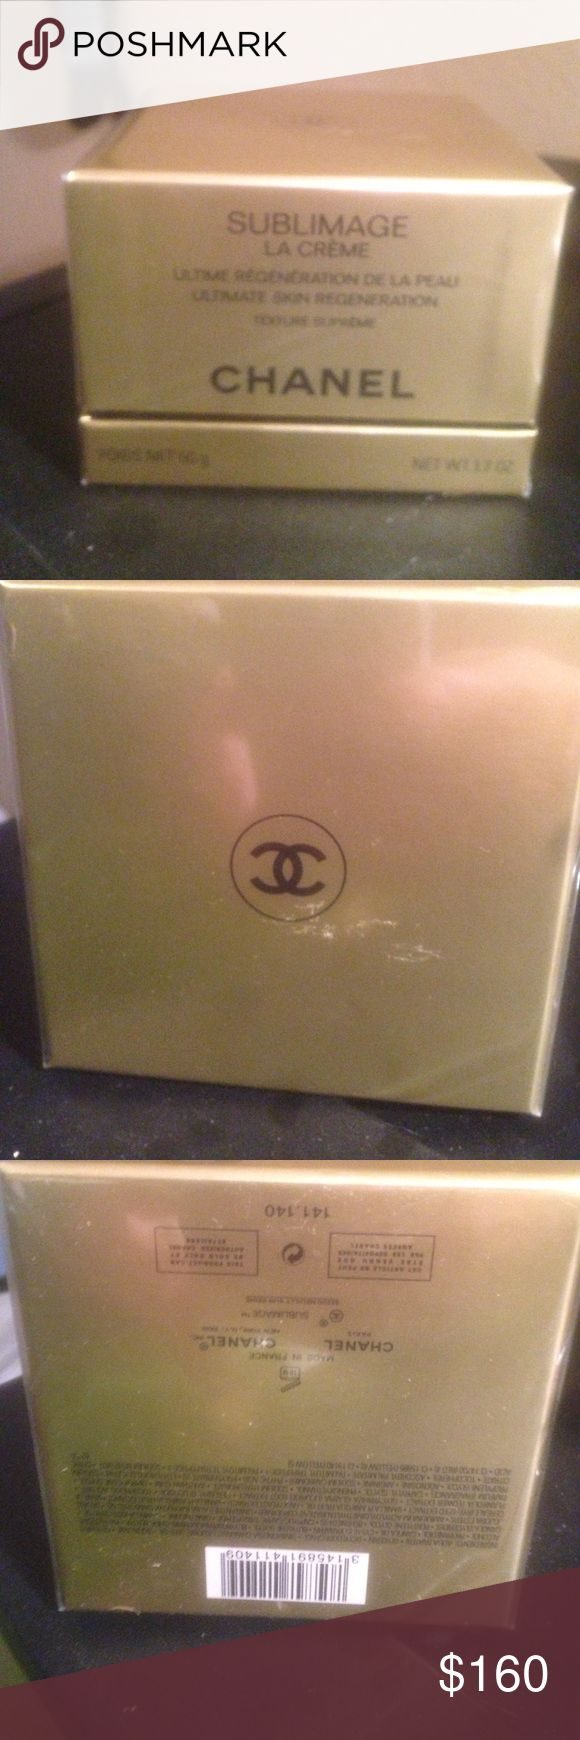 Chanel sublimage ultimate skin regeneration 1.7 oz Brand new in cellophane Chanel sublimage la Creme! Also comes with gift bag... great deal CHANEL Makeup